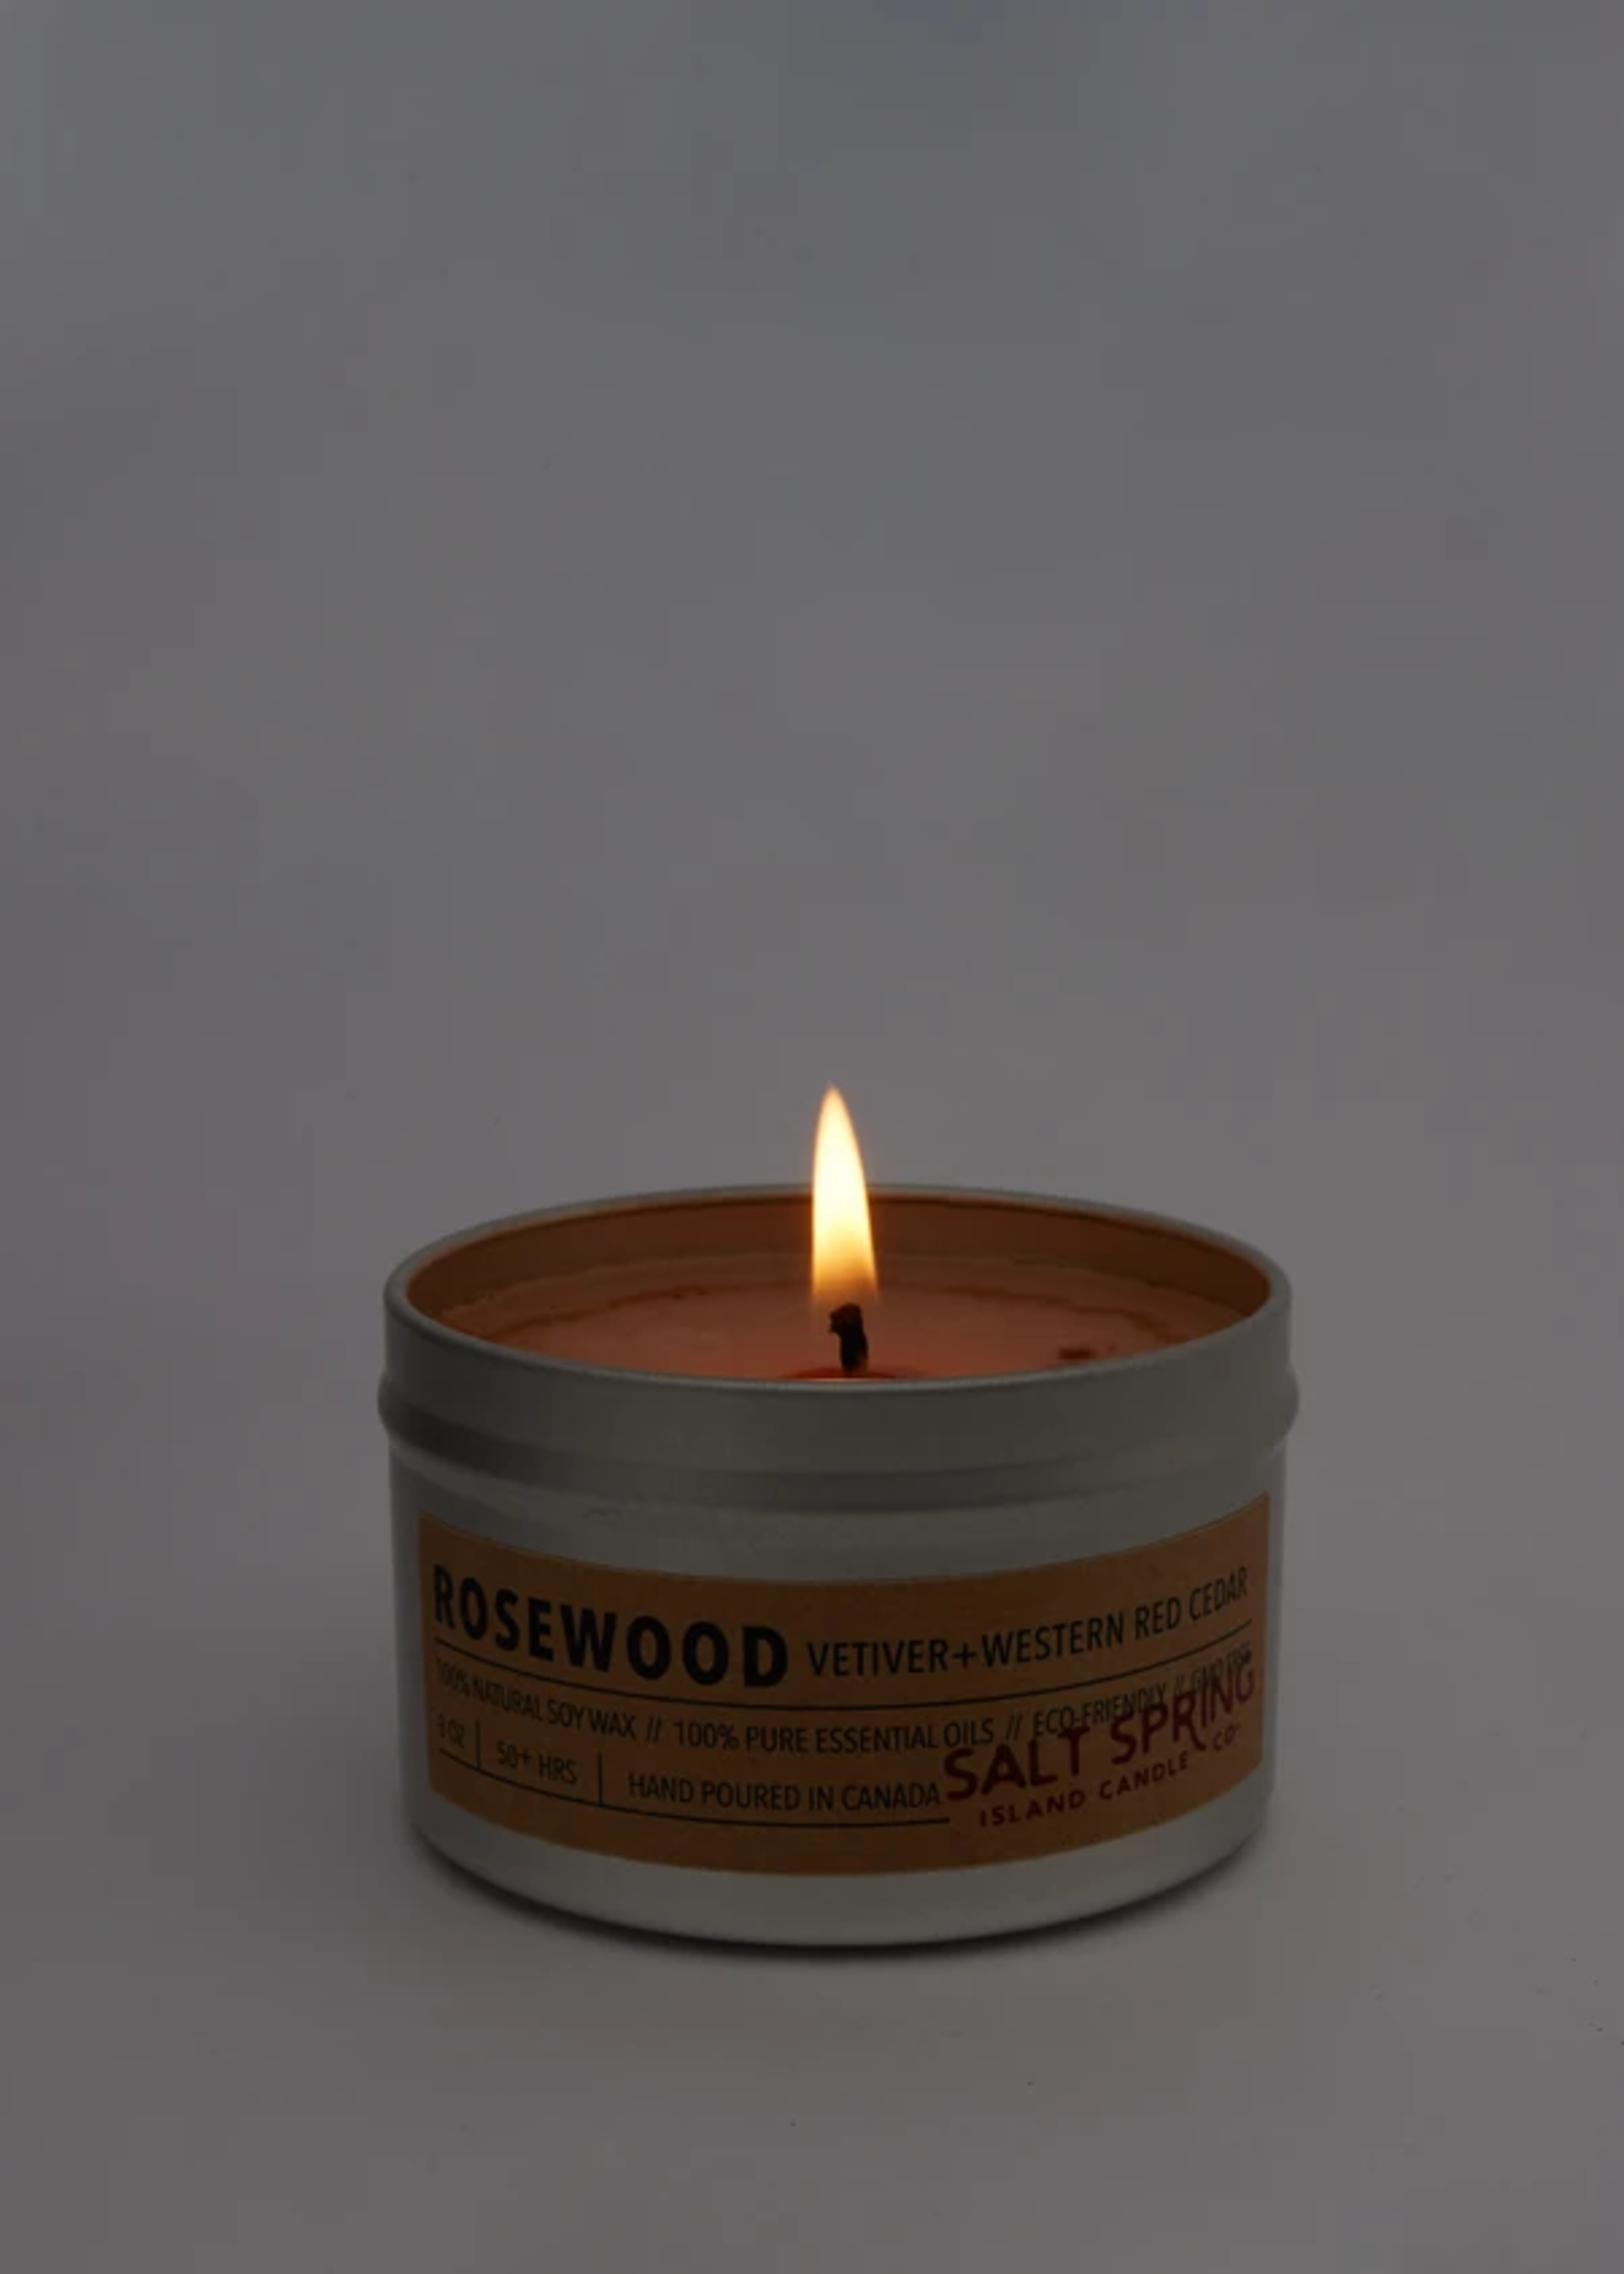 Salt Spring Island Candle Co. - Rosewood 4 oz Candle